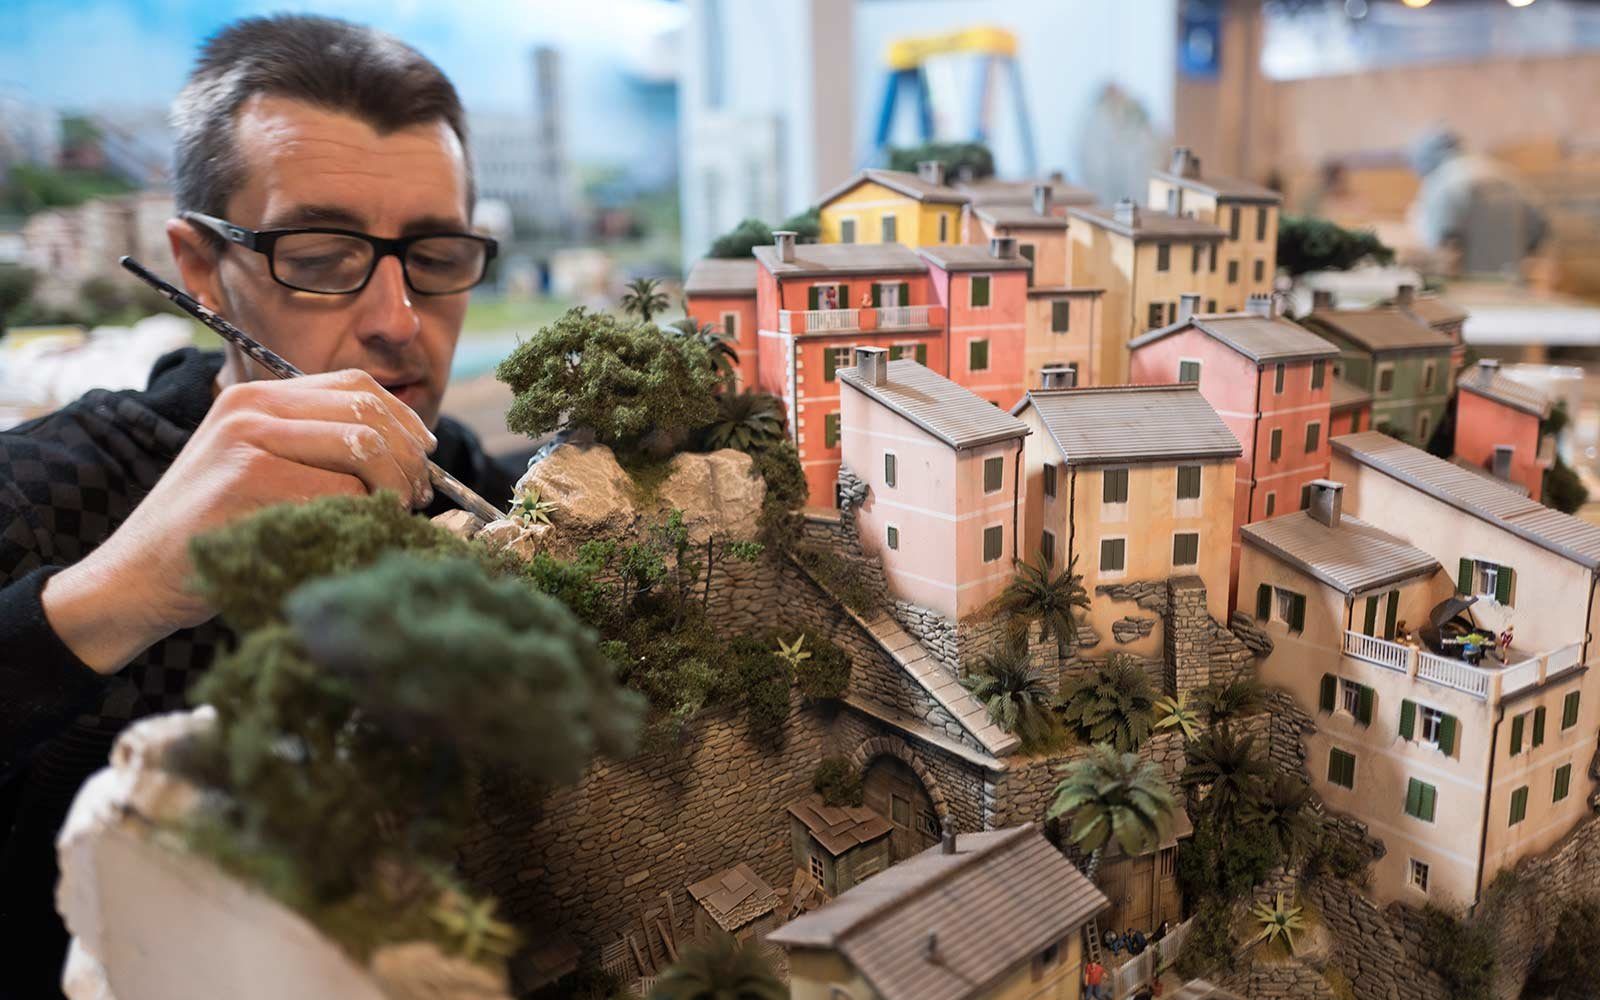 There's An Entire Miniature World That Fills This New York City Block   [travel + Leisure]